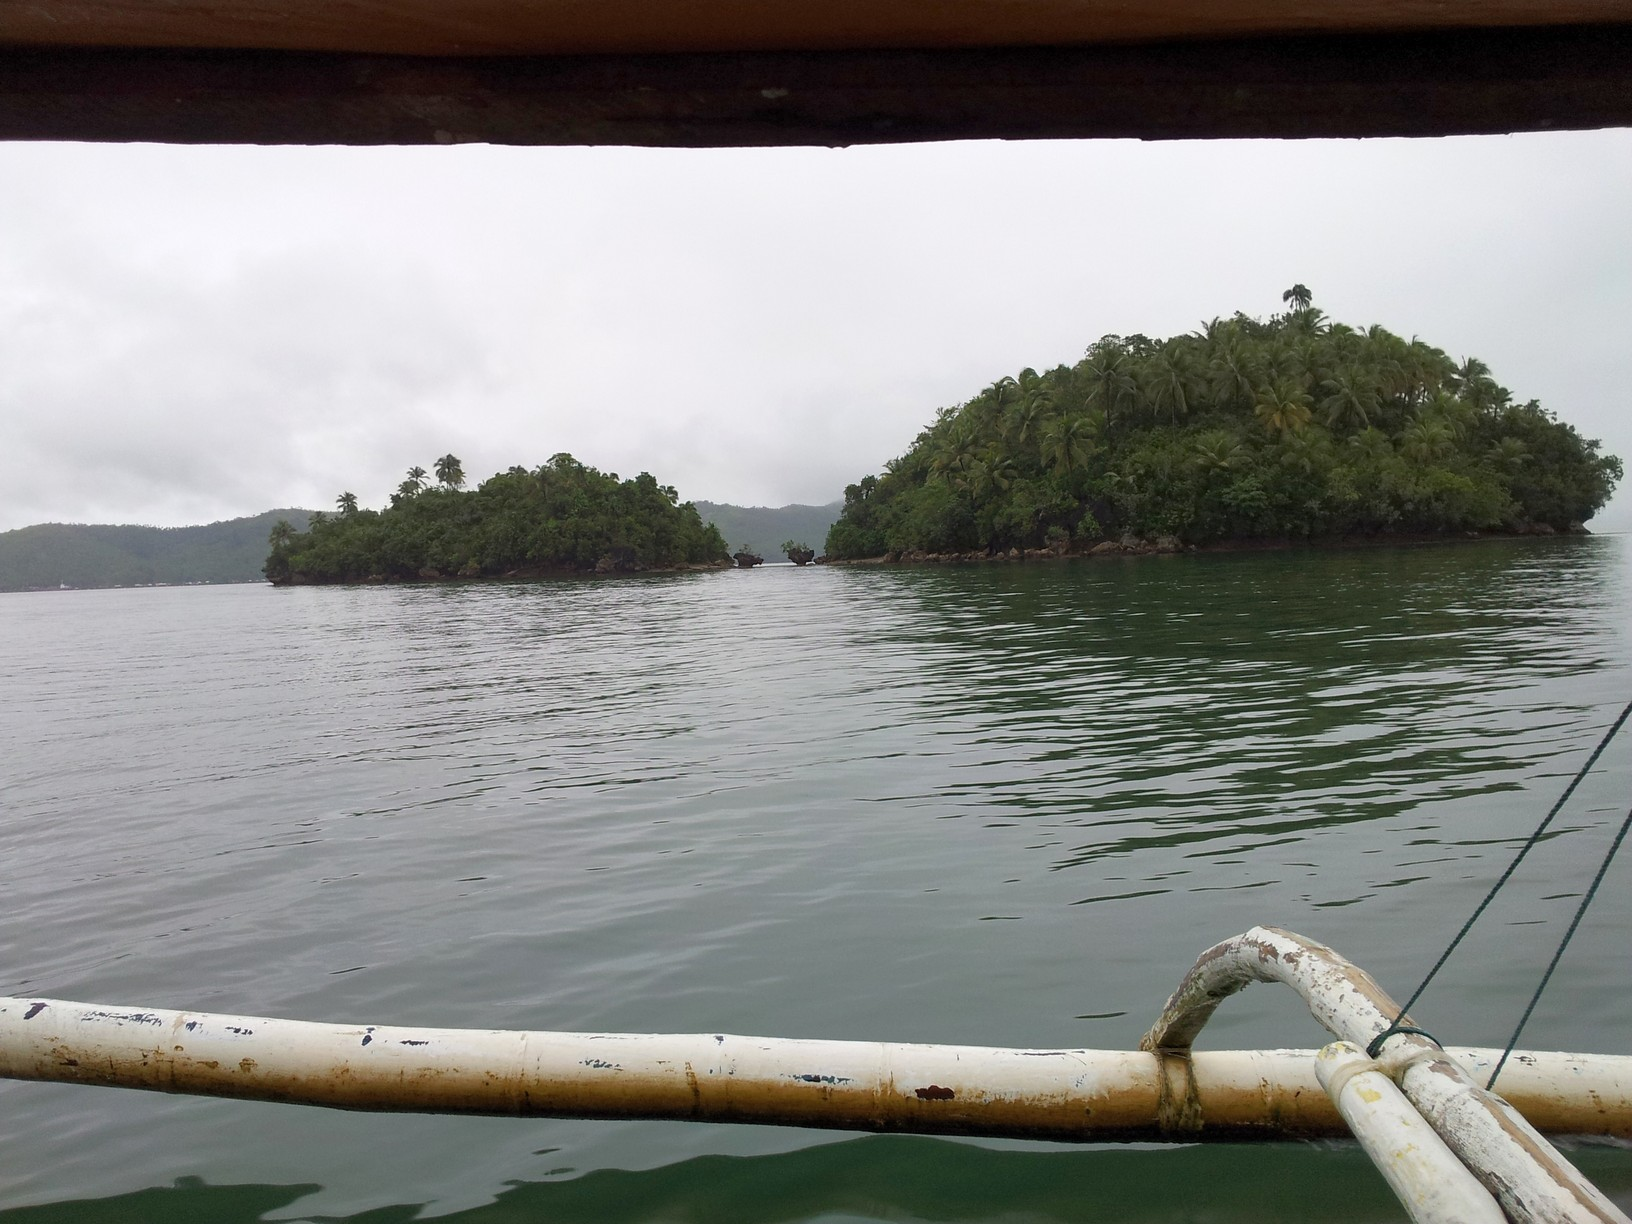 on the way to the island